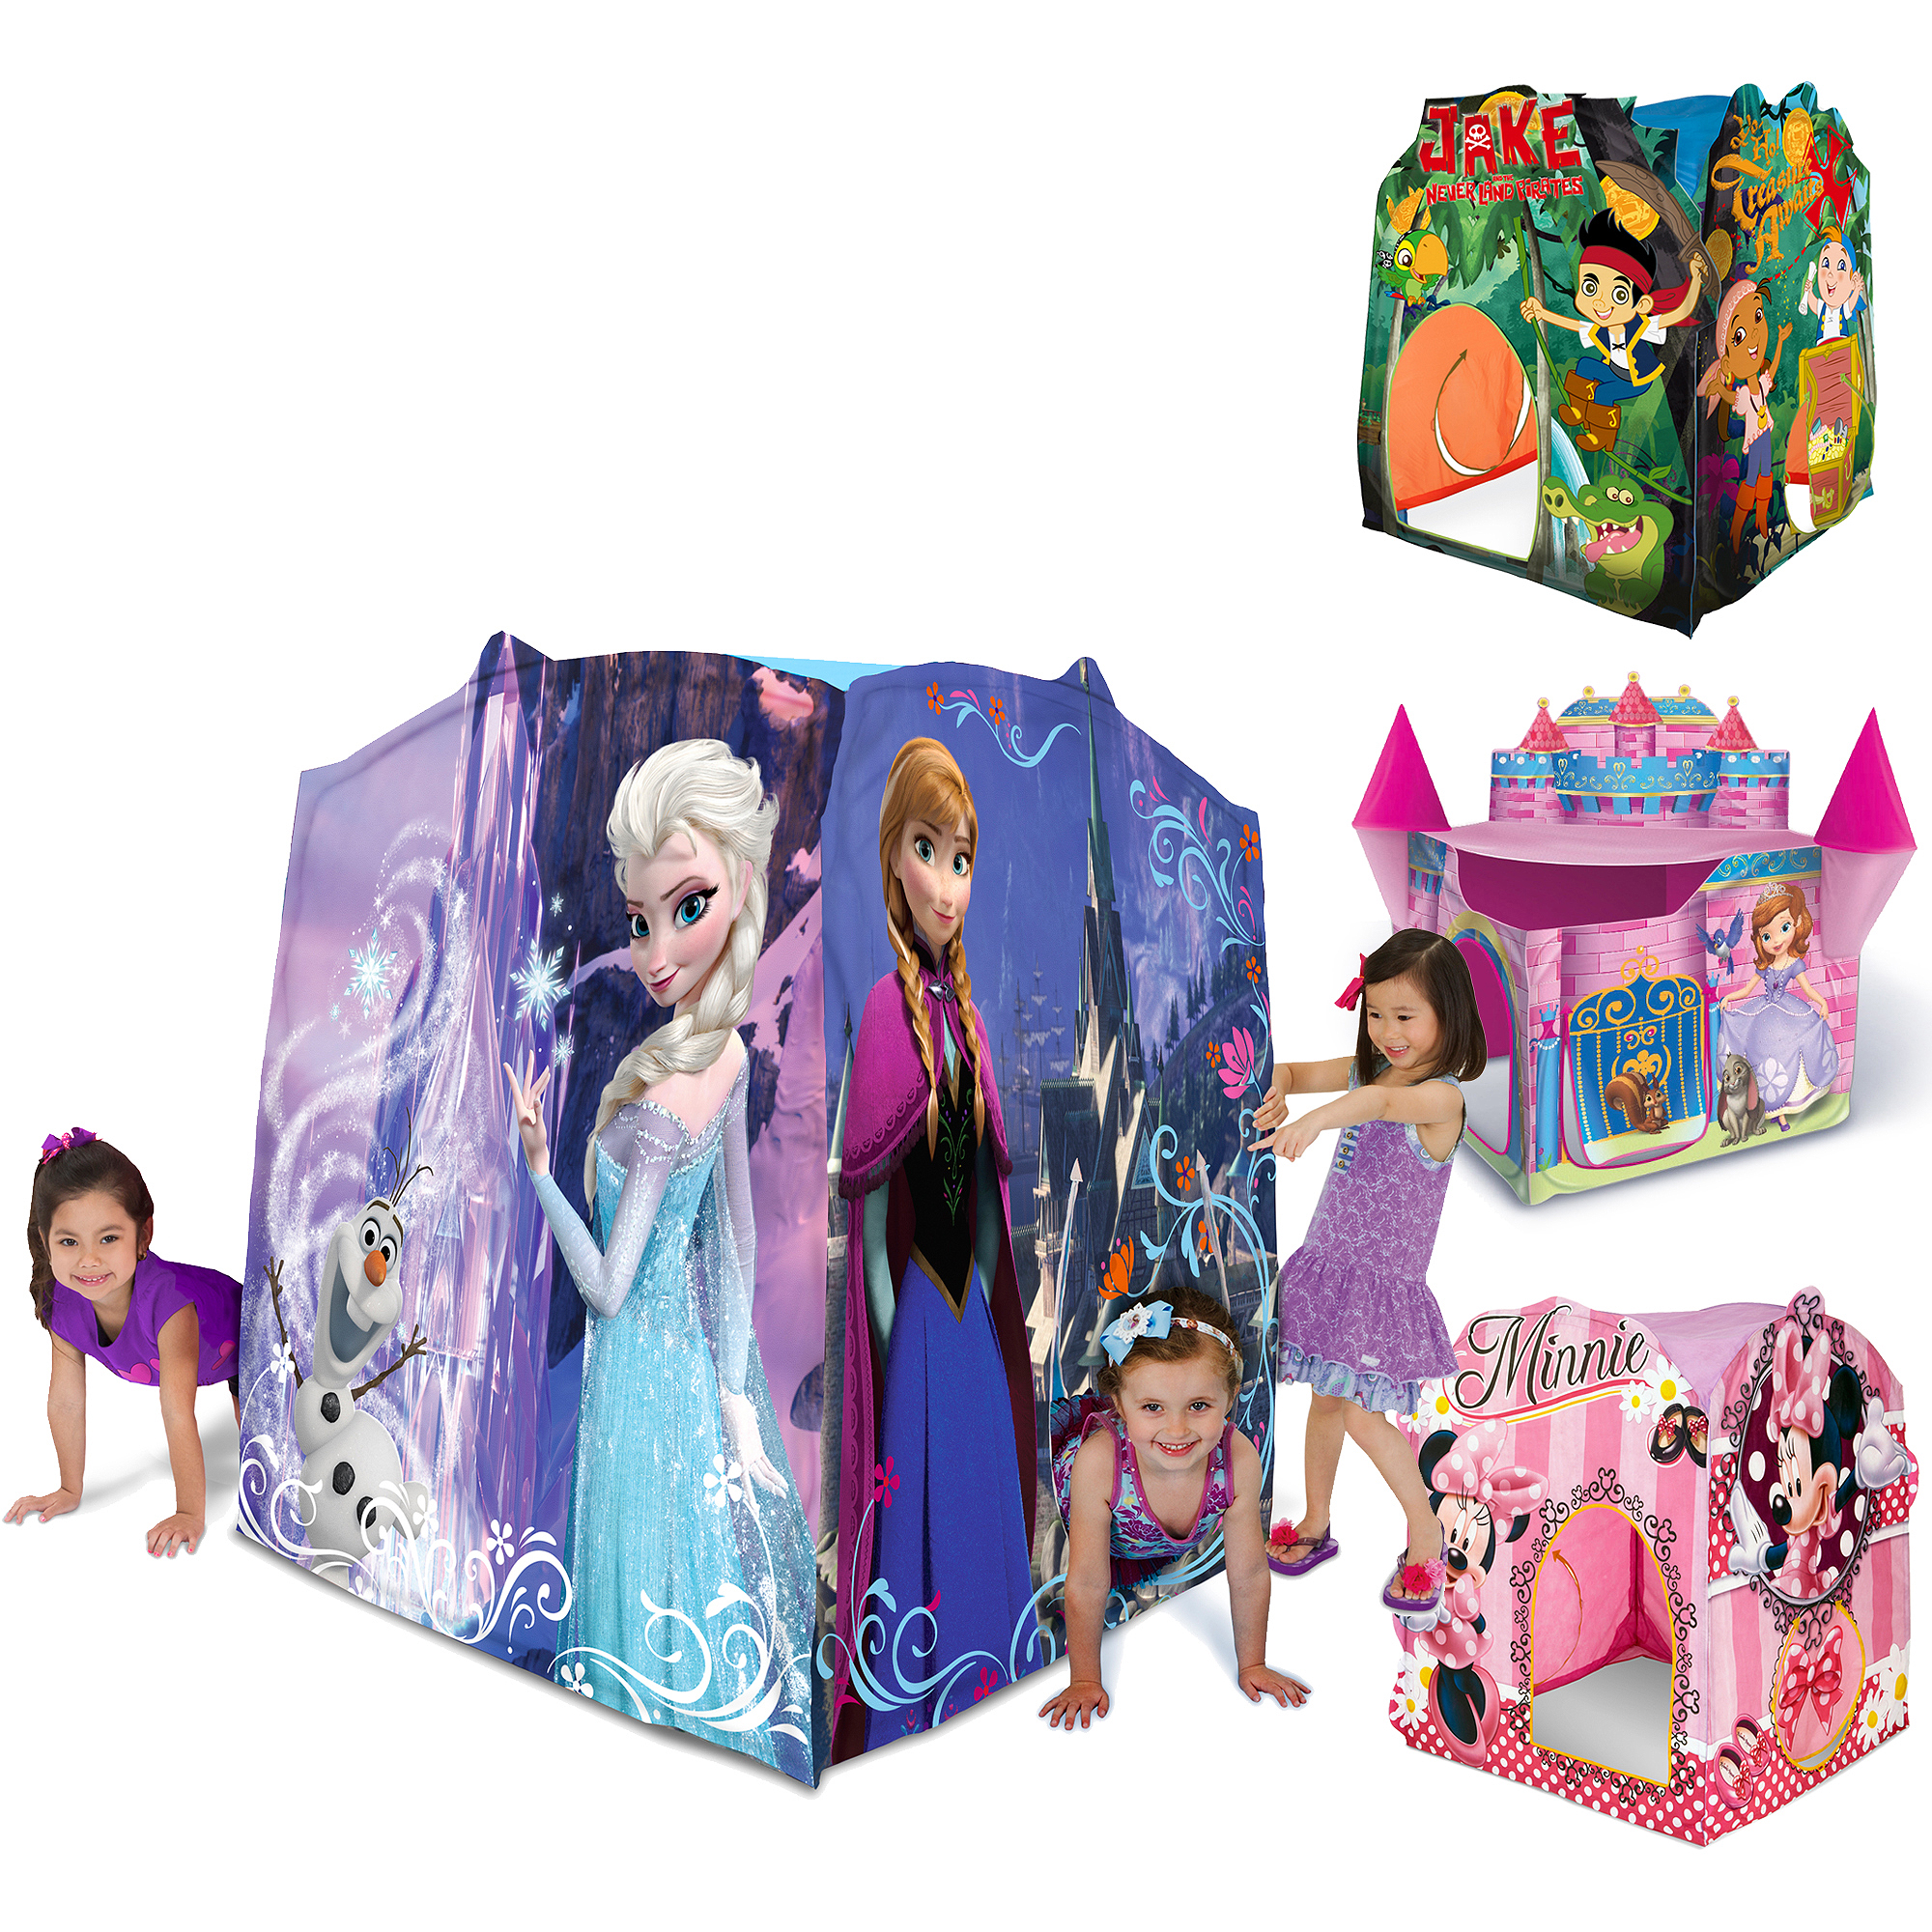 Disney Play Tent Characters- Frozen Sofia Jake u0026 Minnie  sc 1 st  Walmart & Disney Play Tent Characters- Frozen Sofia Jake u0026 Minnie ...